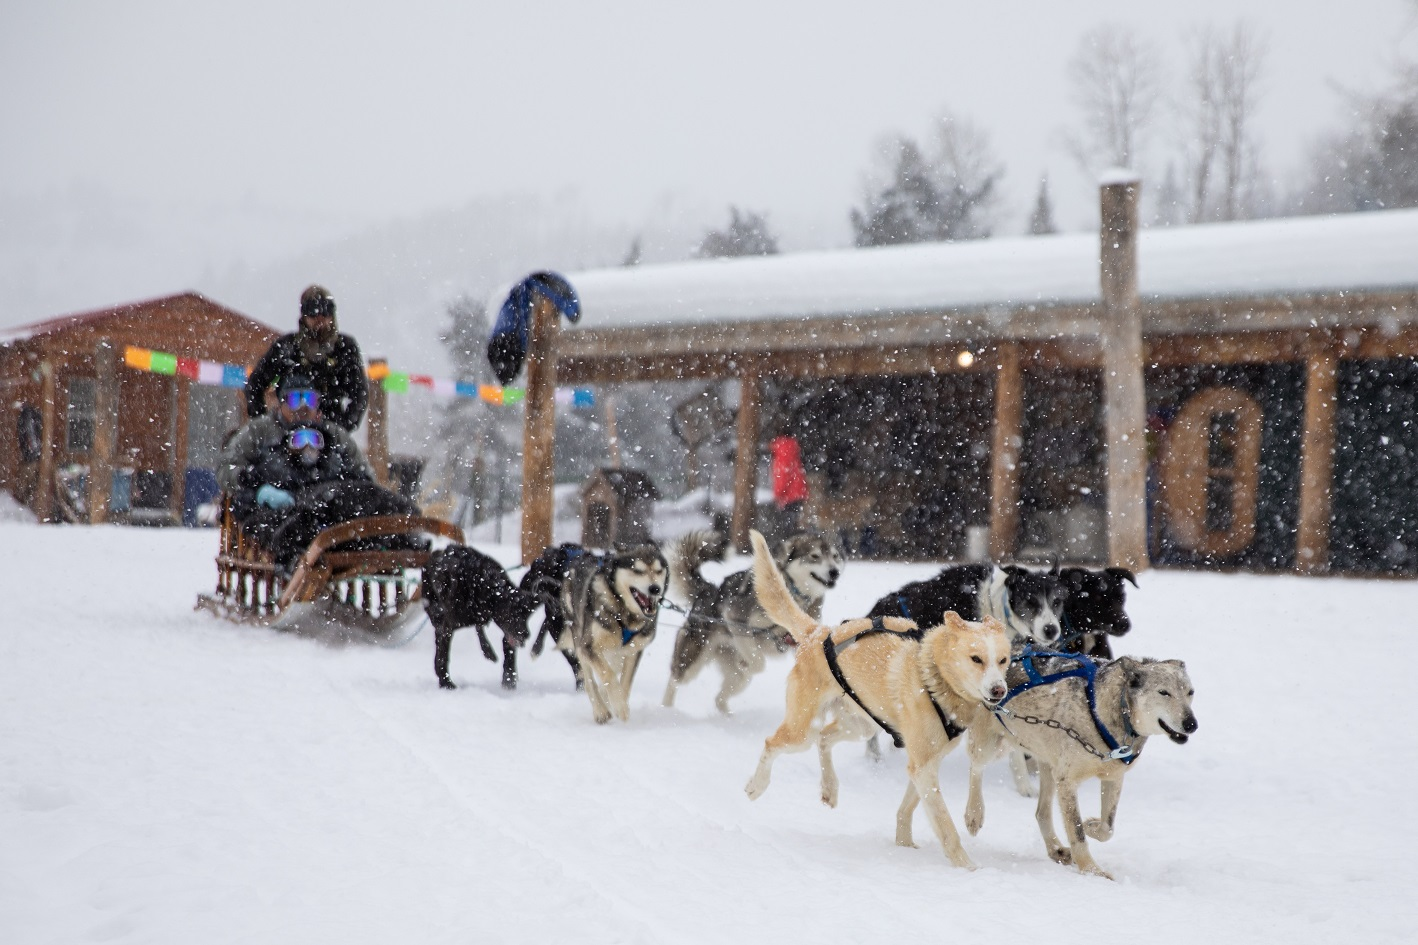 Gant Aspen has partnered with local outfitters to create private experiences from dog sled tours, guided snowshoe tours, uphill skiing and more.